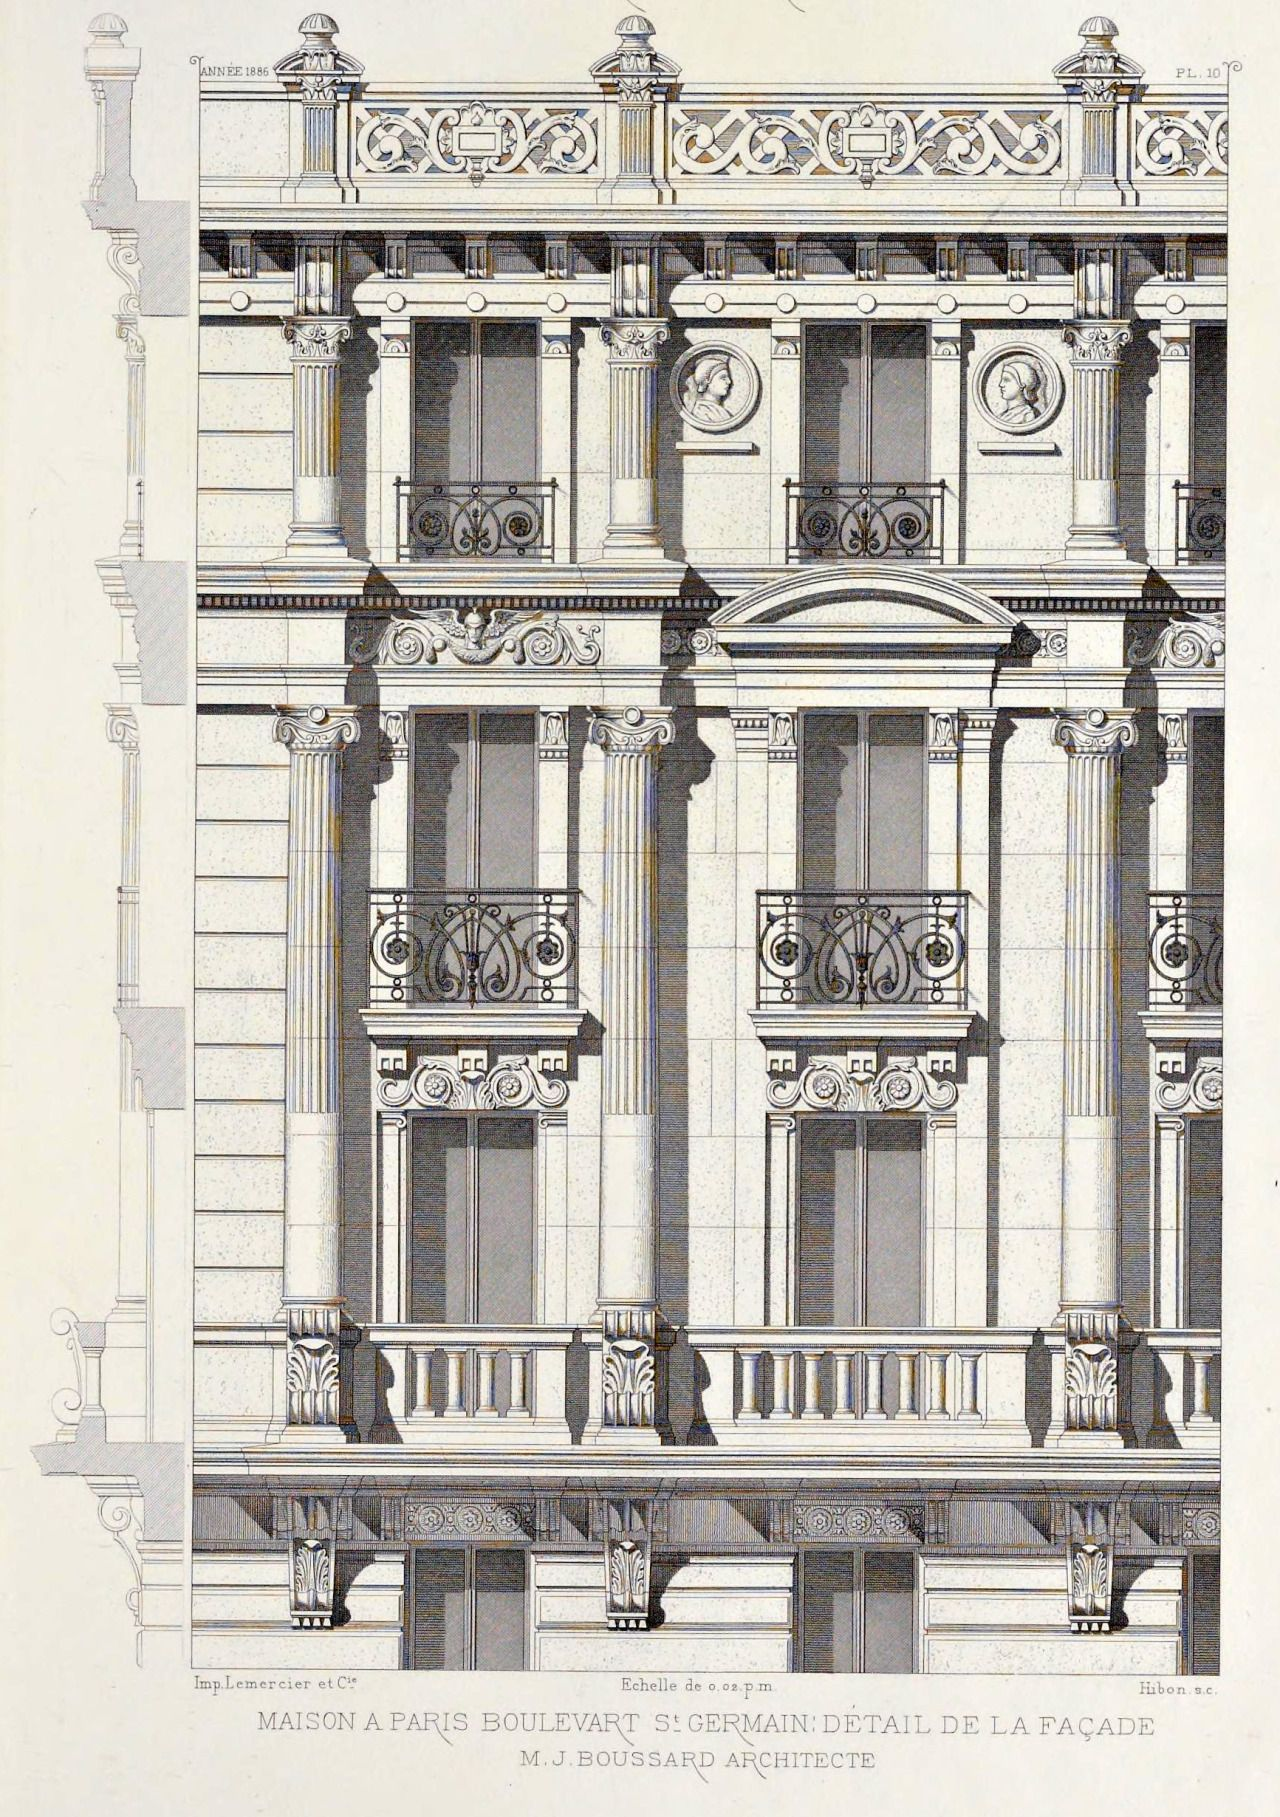 detail of elevation of an apartment building on boulevard saint